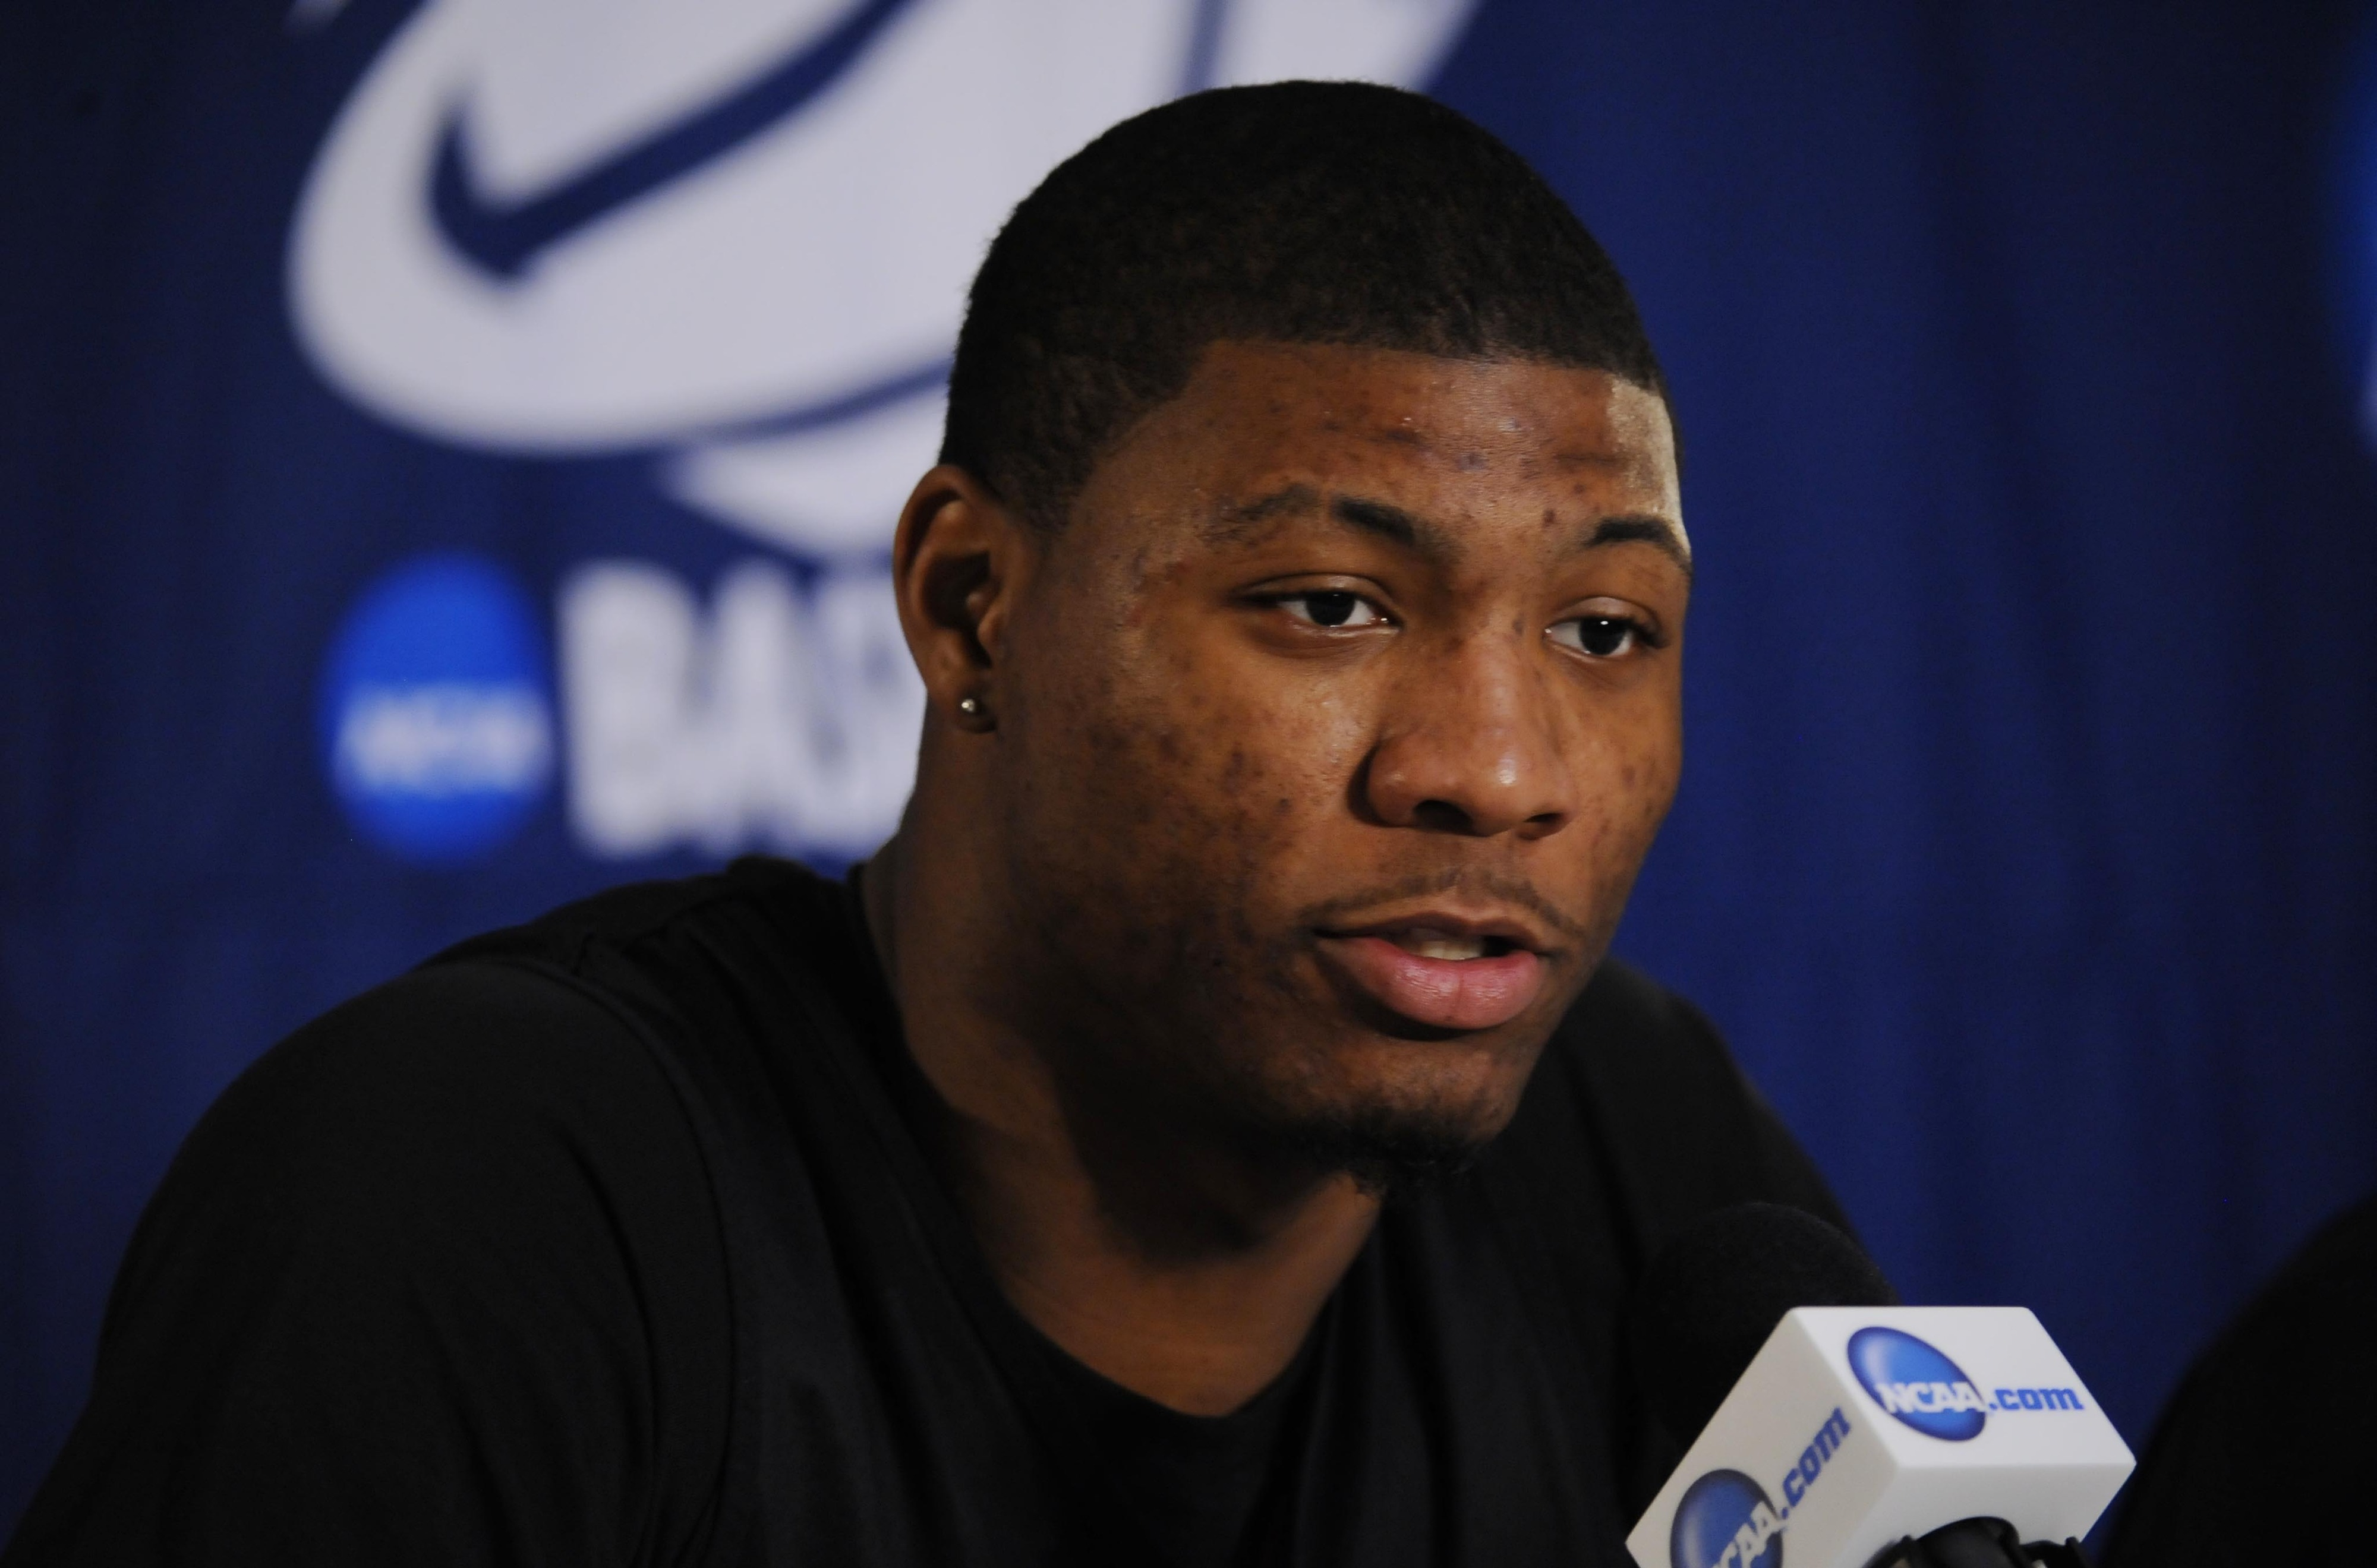 Marcus Smart is an advanced stats favorite, so let's torch another straw man